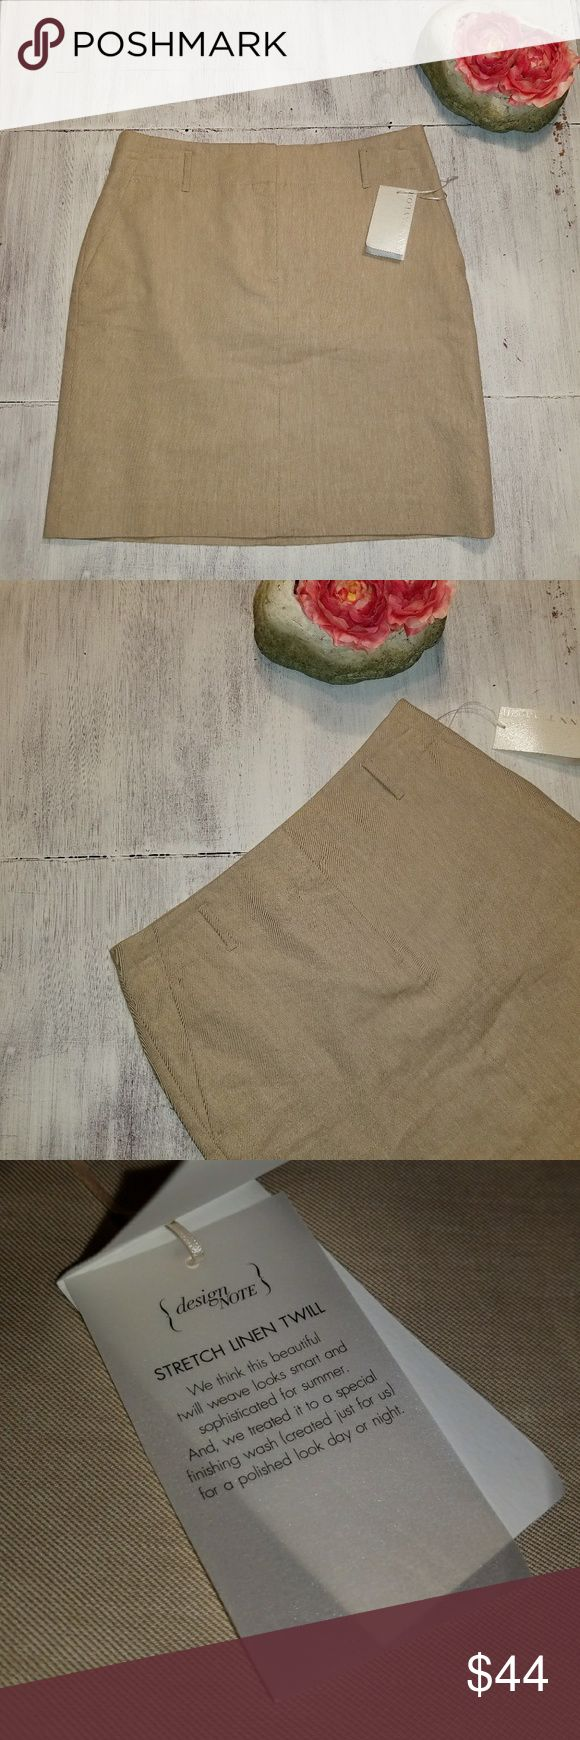 """NWT Ann Taylor Stretch Linen Twill Pencil Skirt 2 Beautiful light khaki colored linen twill skirt by Ann Taylor. New with tags attached with an original price of $88.00.   Laying flat measurements: Waist 14.5"""" Length18"""" Ann Taylor Skirts Pencil"""